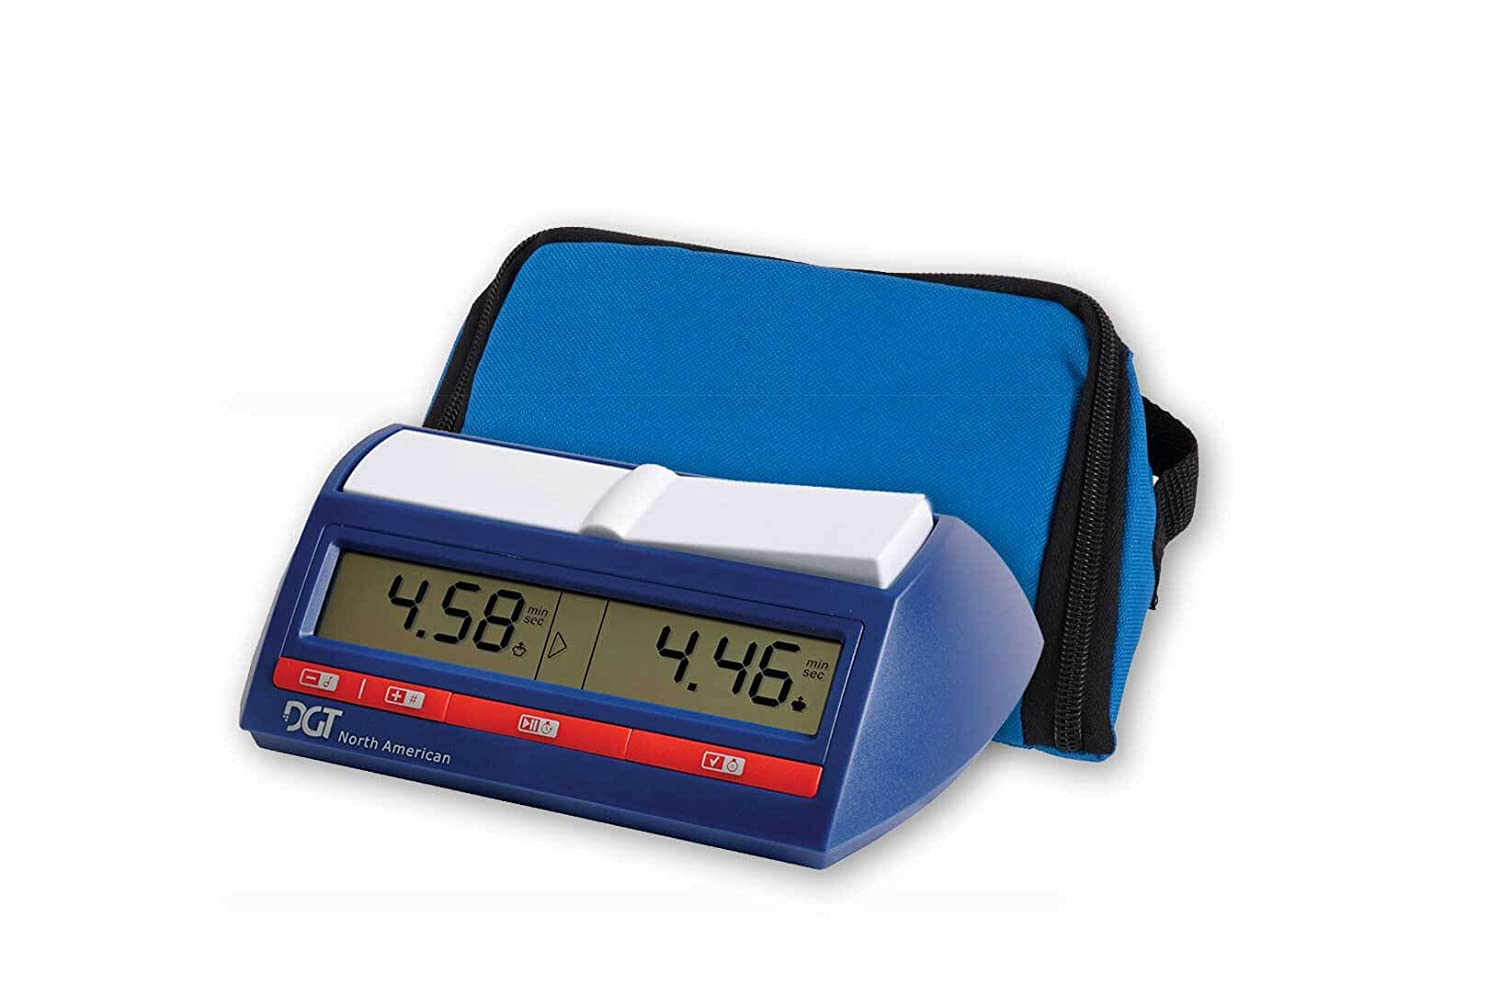 DGT North American Digital Chess Clock with Wedge Bag